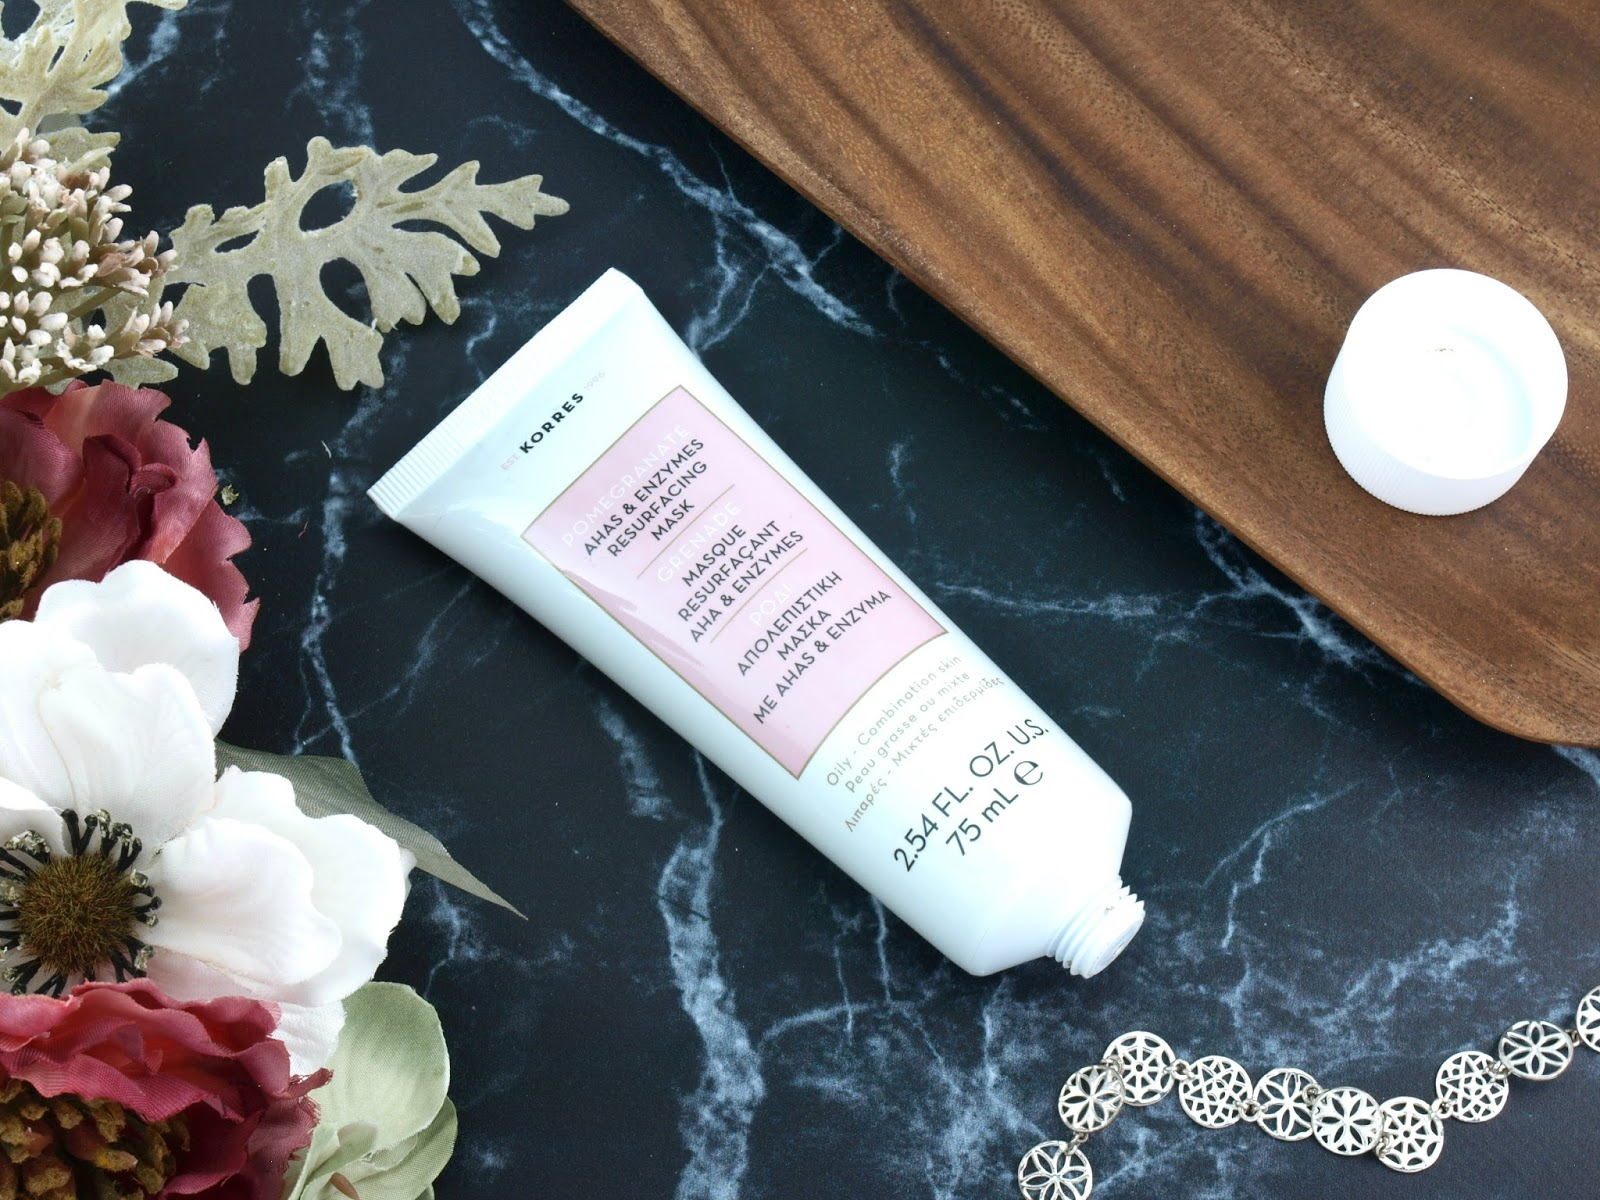 KORRES | Pomegranate AHAs & Enzymes Resurfacing Mask: Review